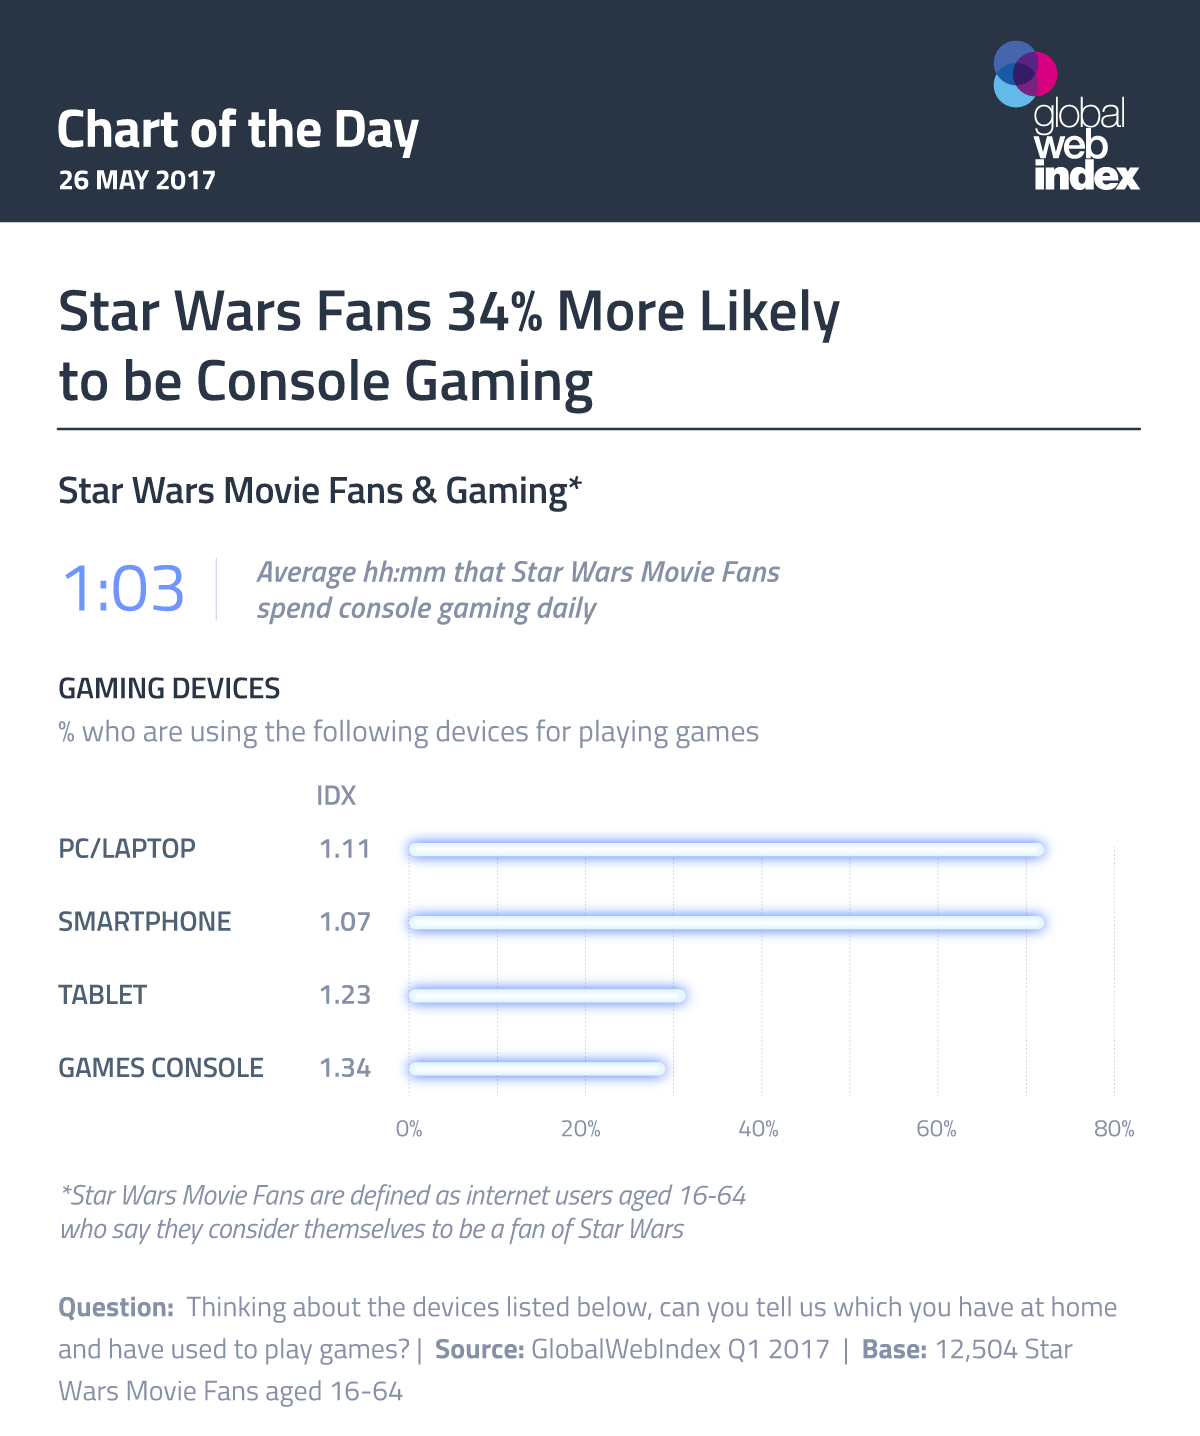 Star Wars Fans 34% More Likely to be Console Gaming